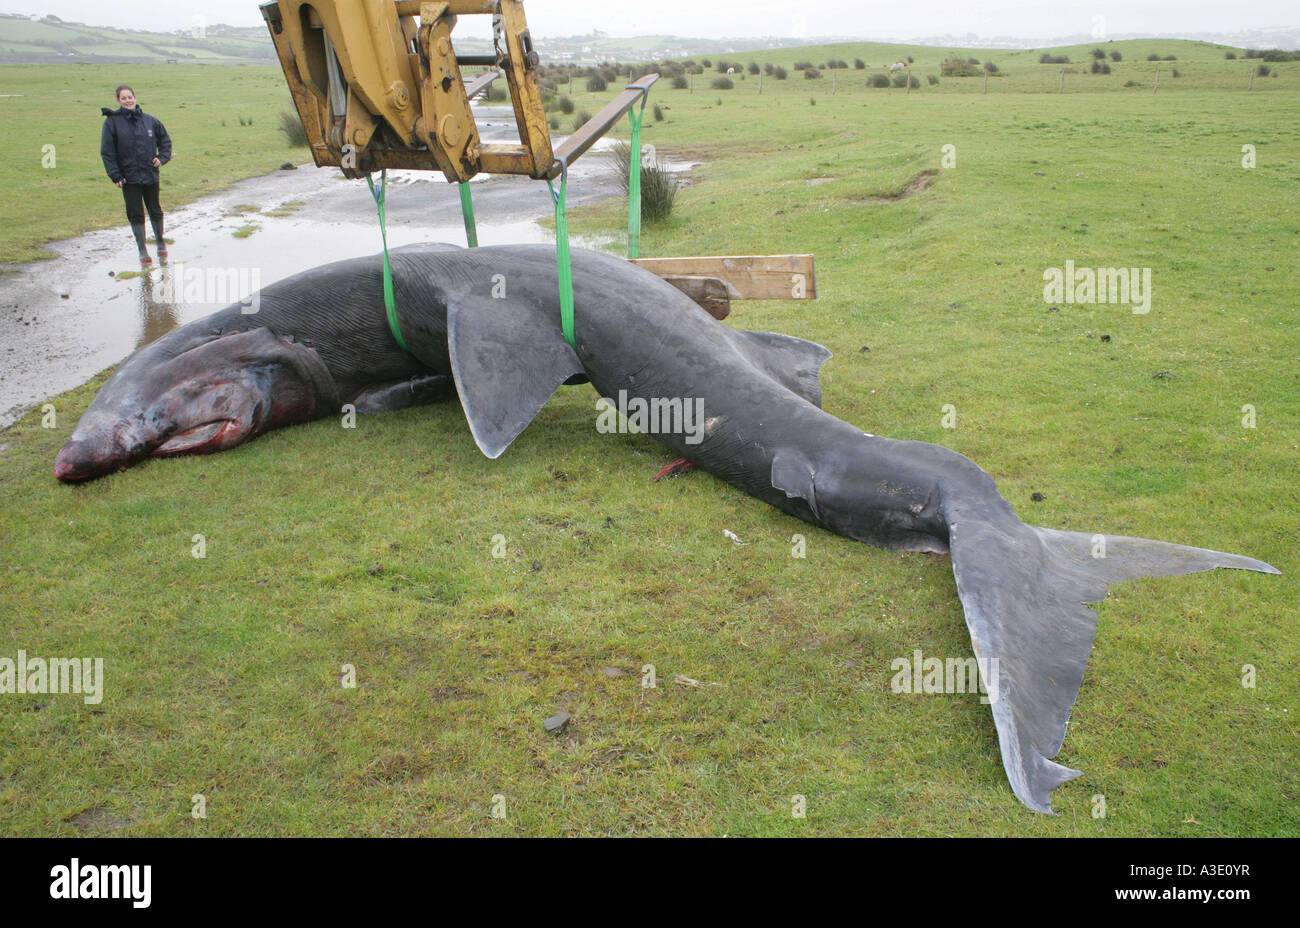 basking shark is removed from beach in Devon after being washed up by high tide - Stock Image